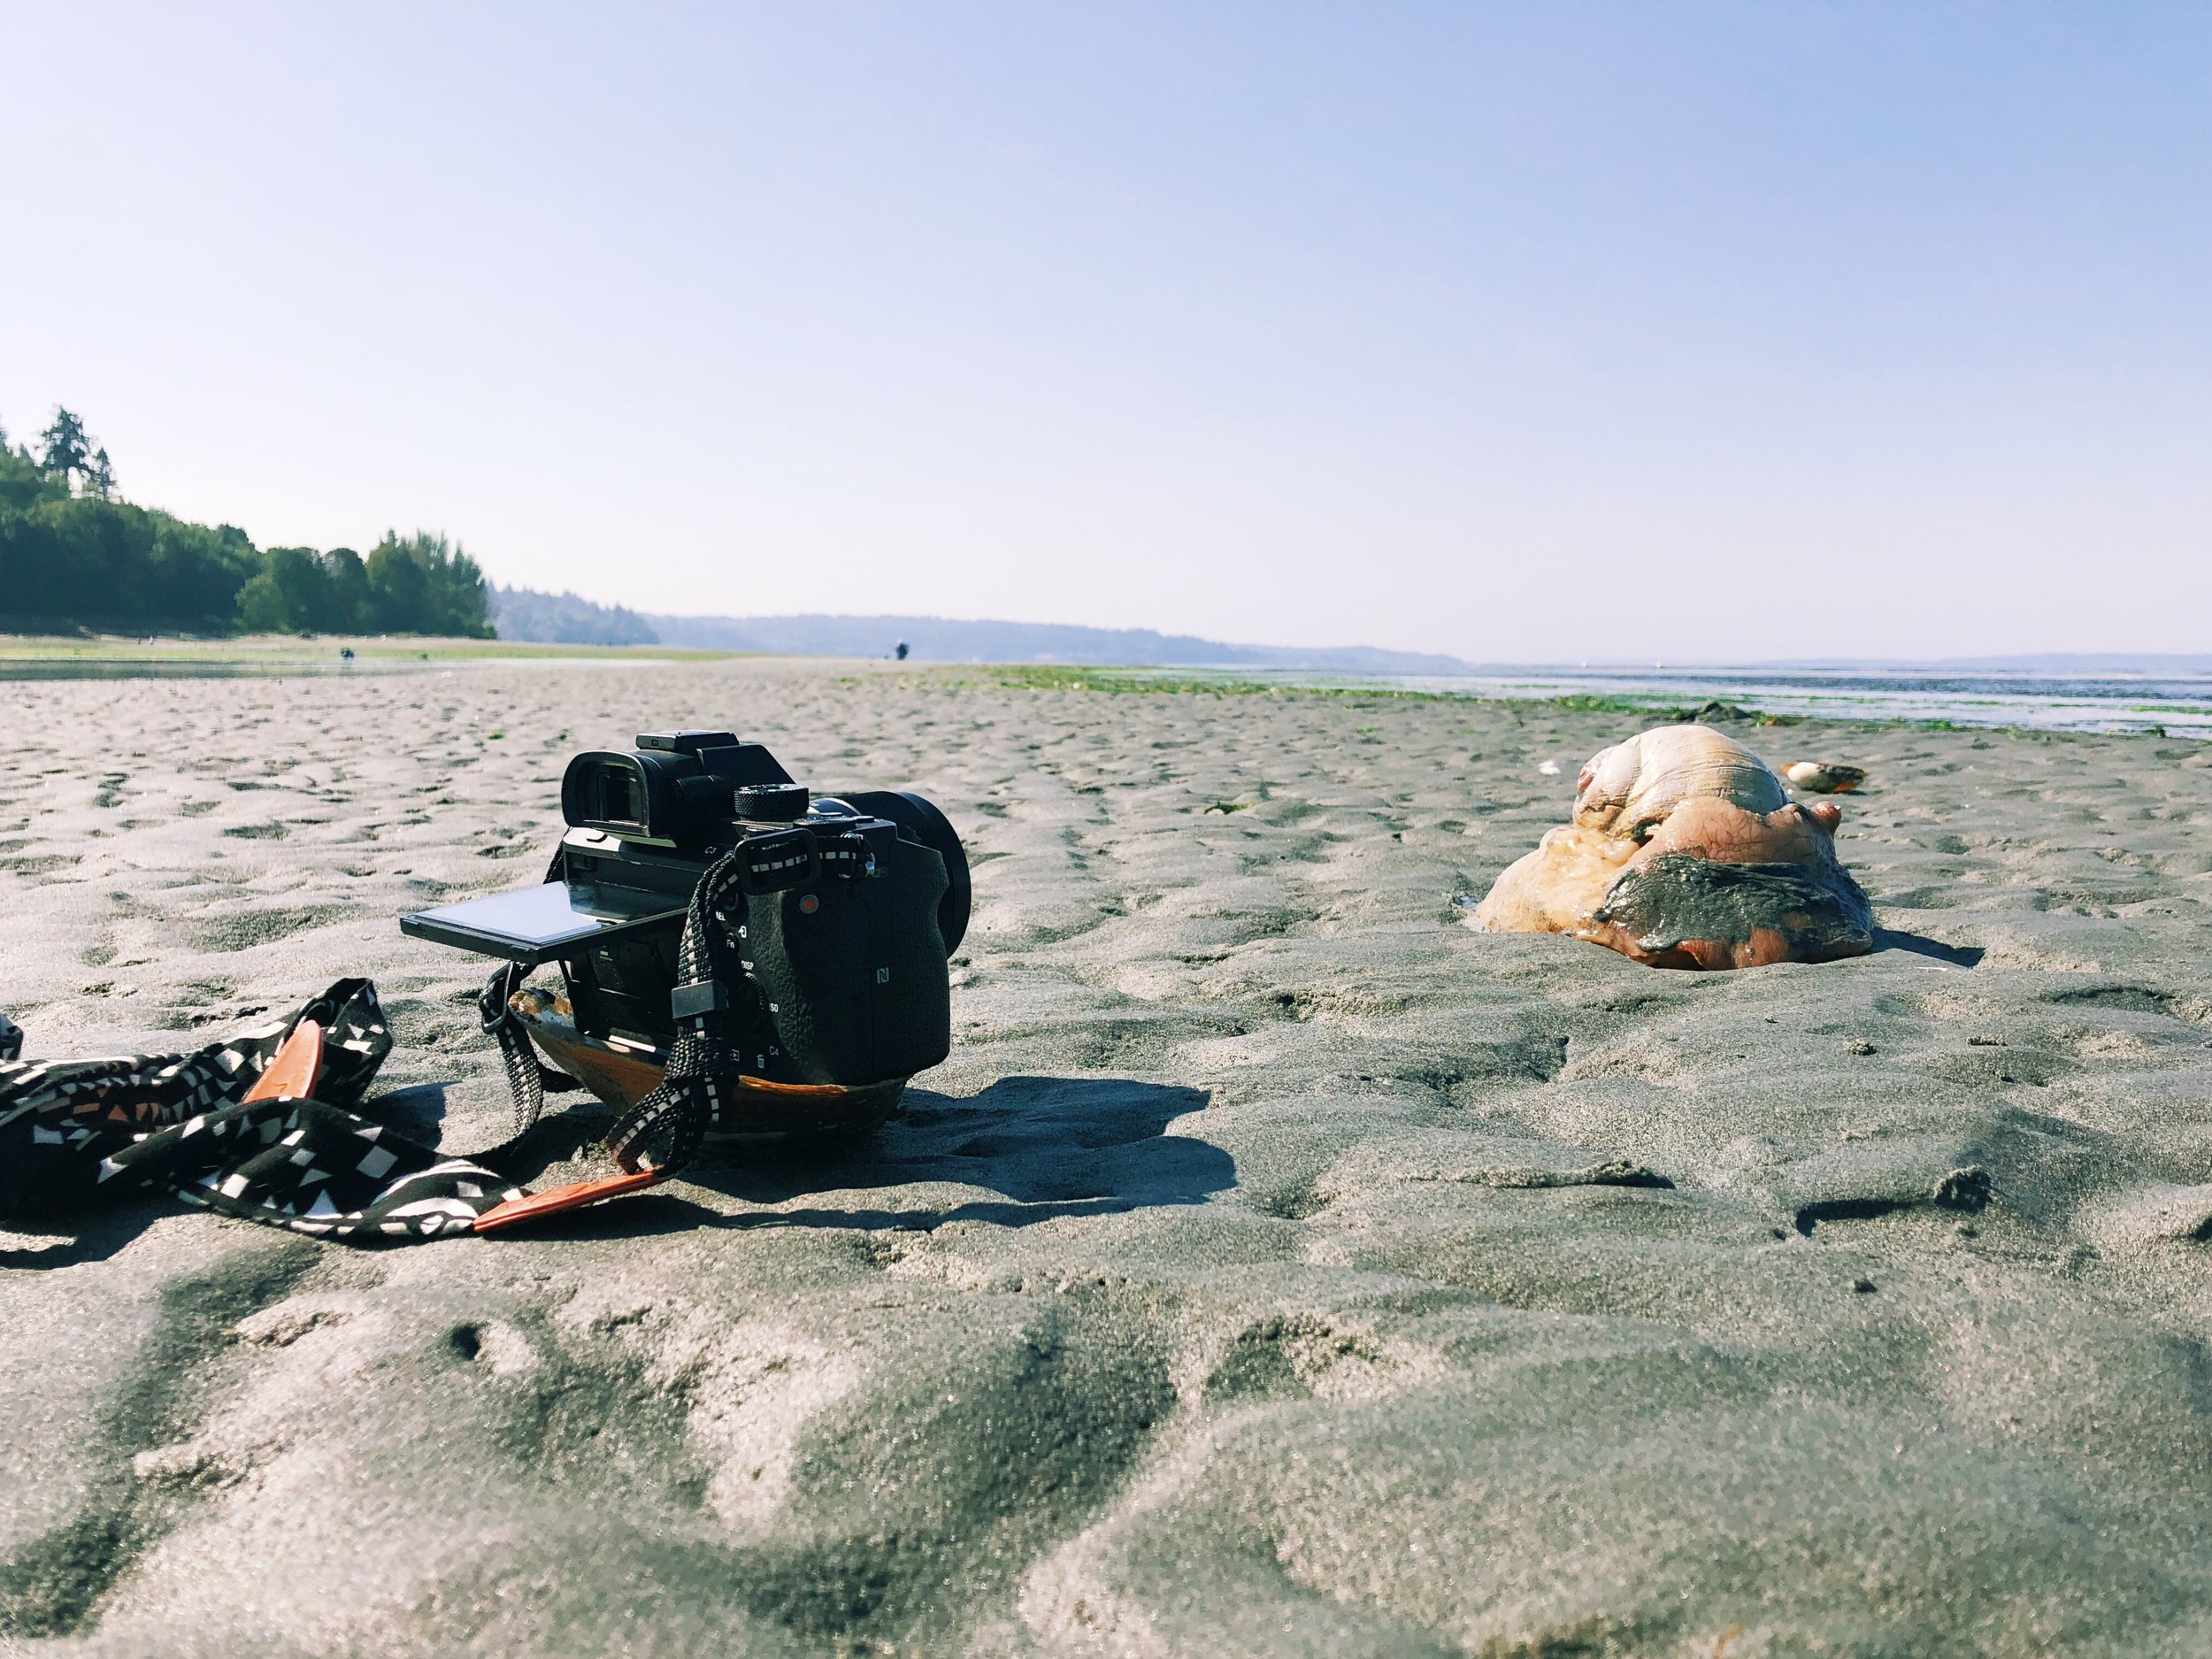 - I wanted to get a quick video of the Moon Snail moving across the sand, but the tide was coming in and I didn't have a tripod, so I pulled out a McGyver move of balancing my camera on a seashell to protect it from the water.